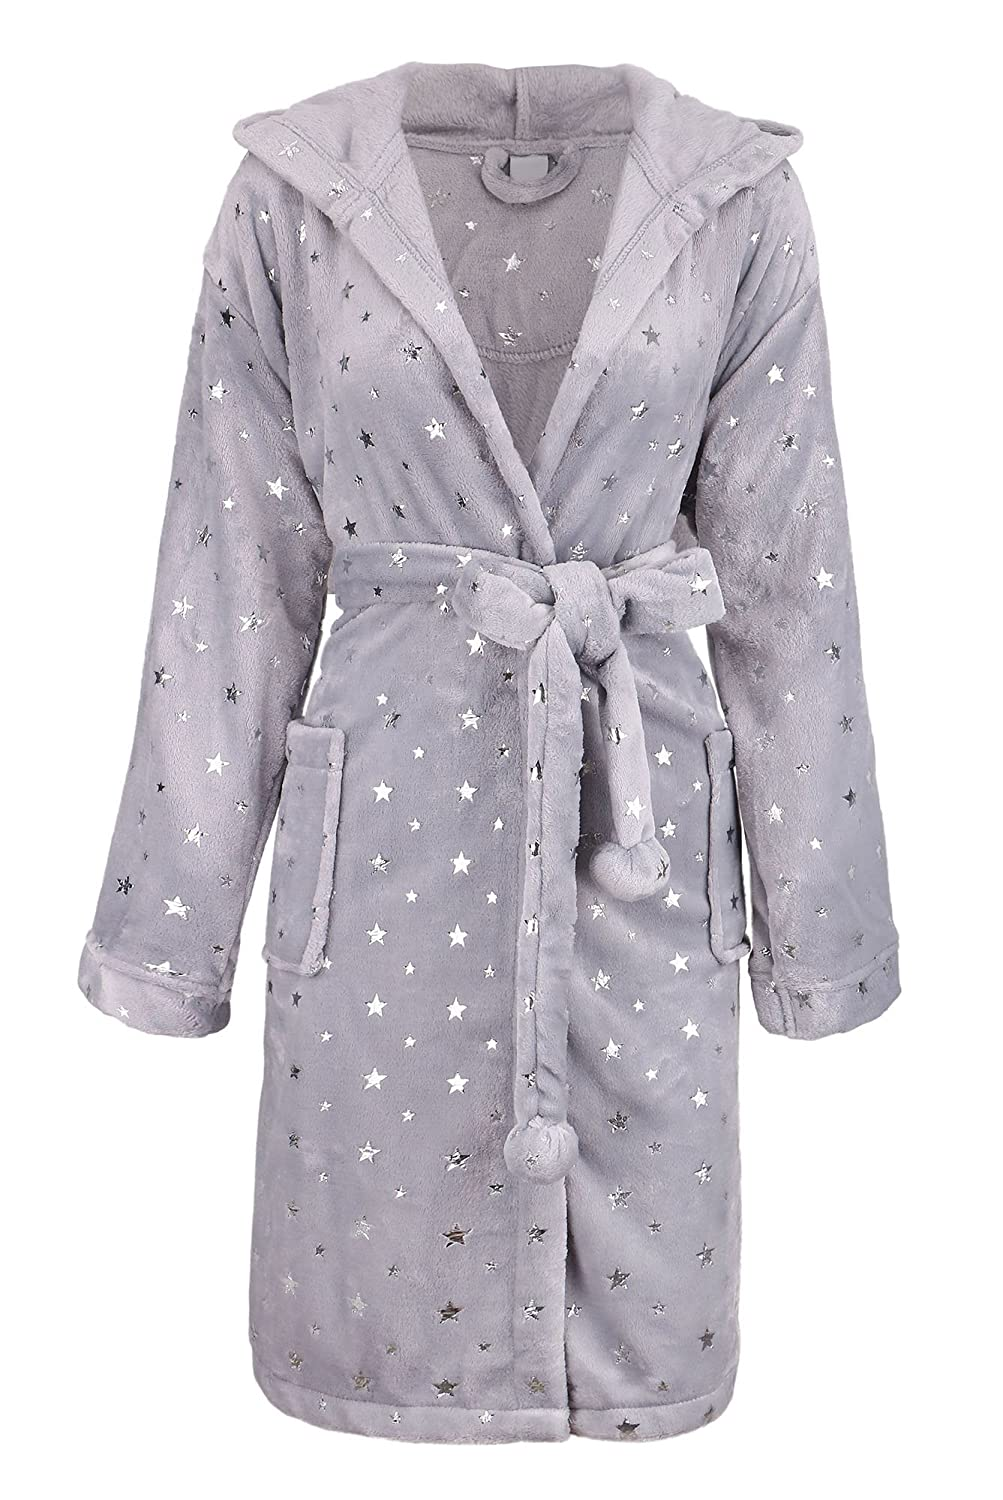 Womens Robe Luxurious Hooded Flannel Fleece Short Bath Robe with Side Pockets